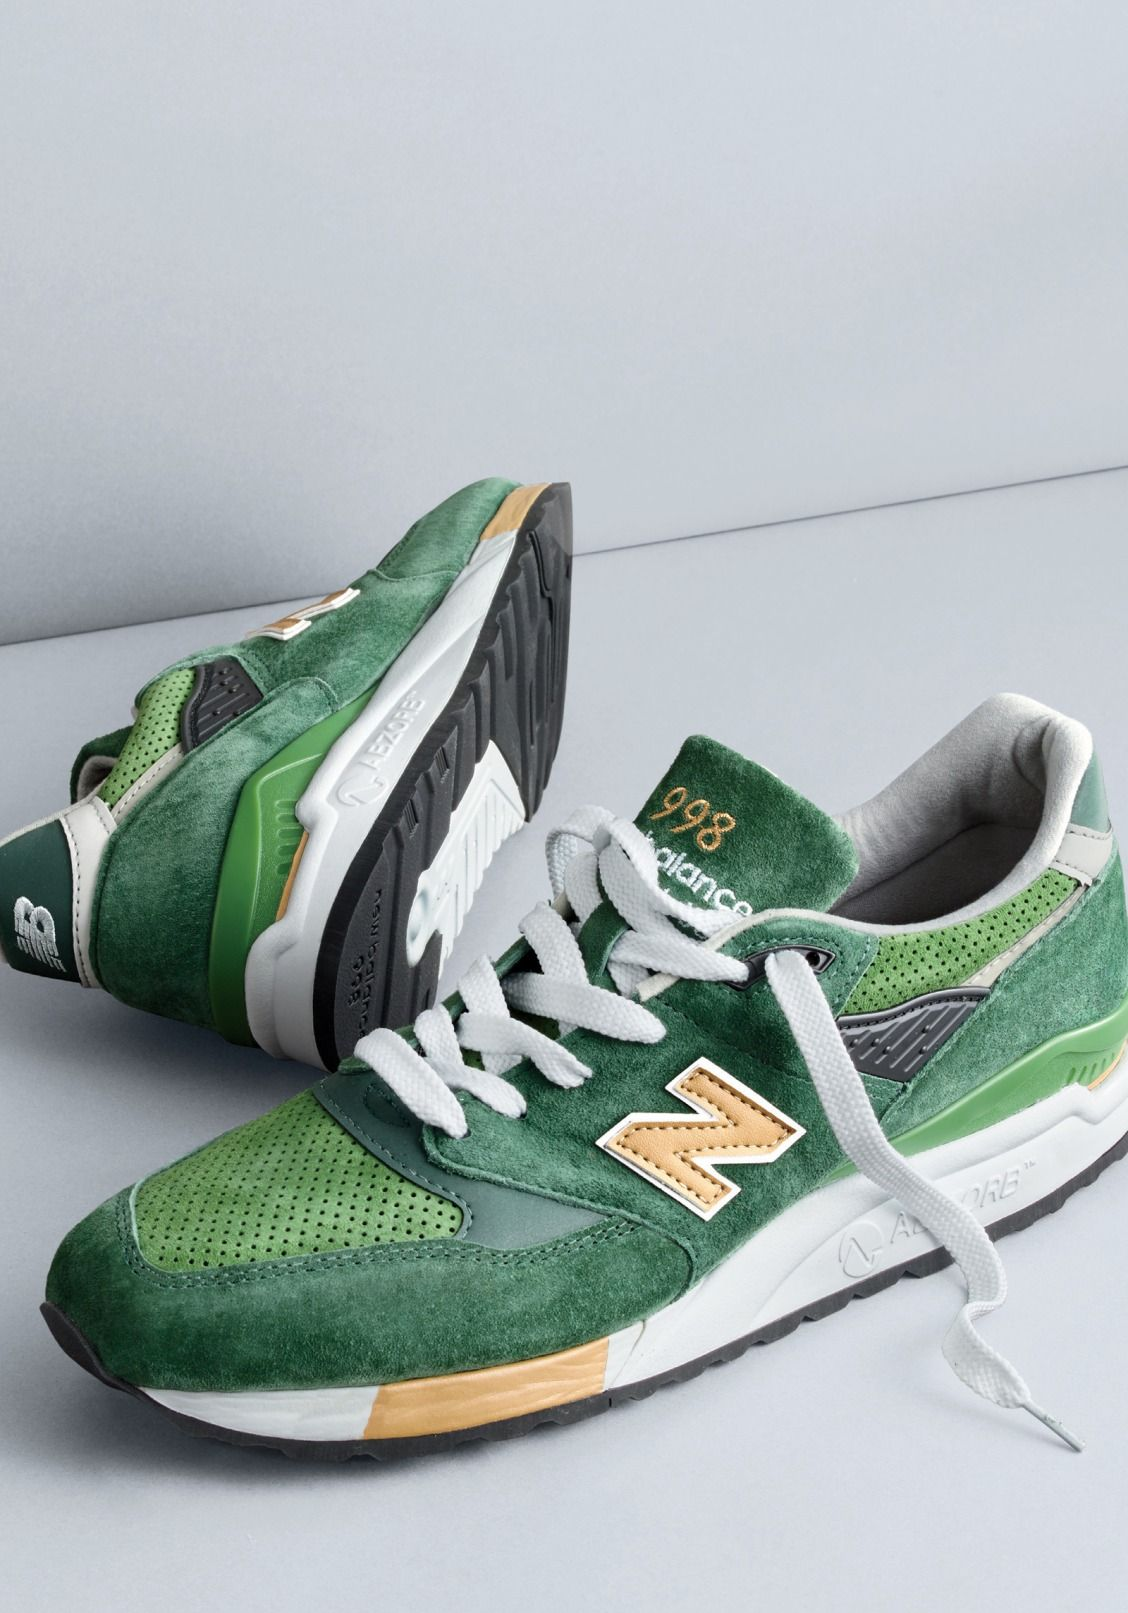 963aa05ea72b7 Only found here. New Balance® for J.Crew 998 Greenback sneaker ...